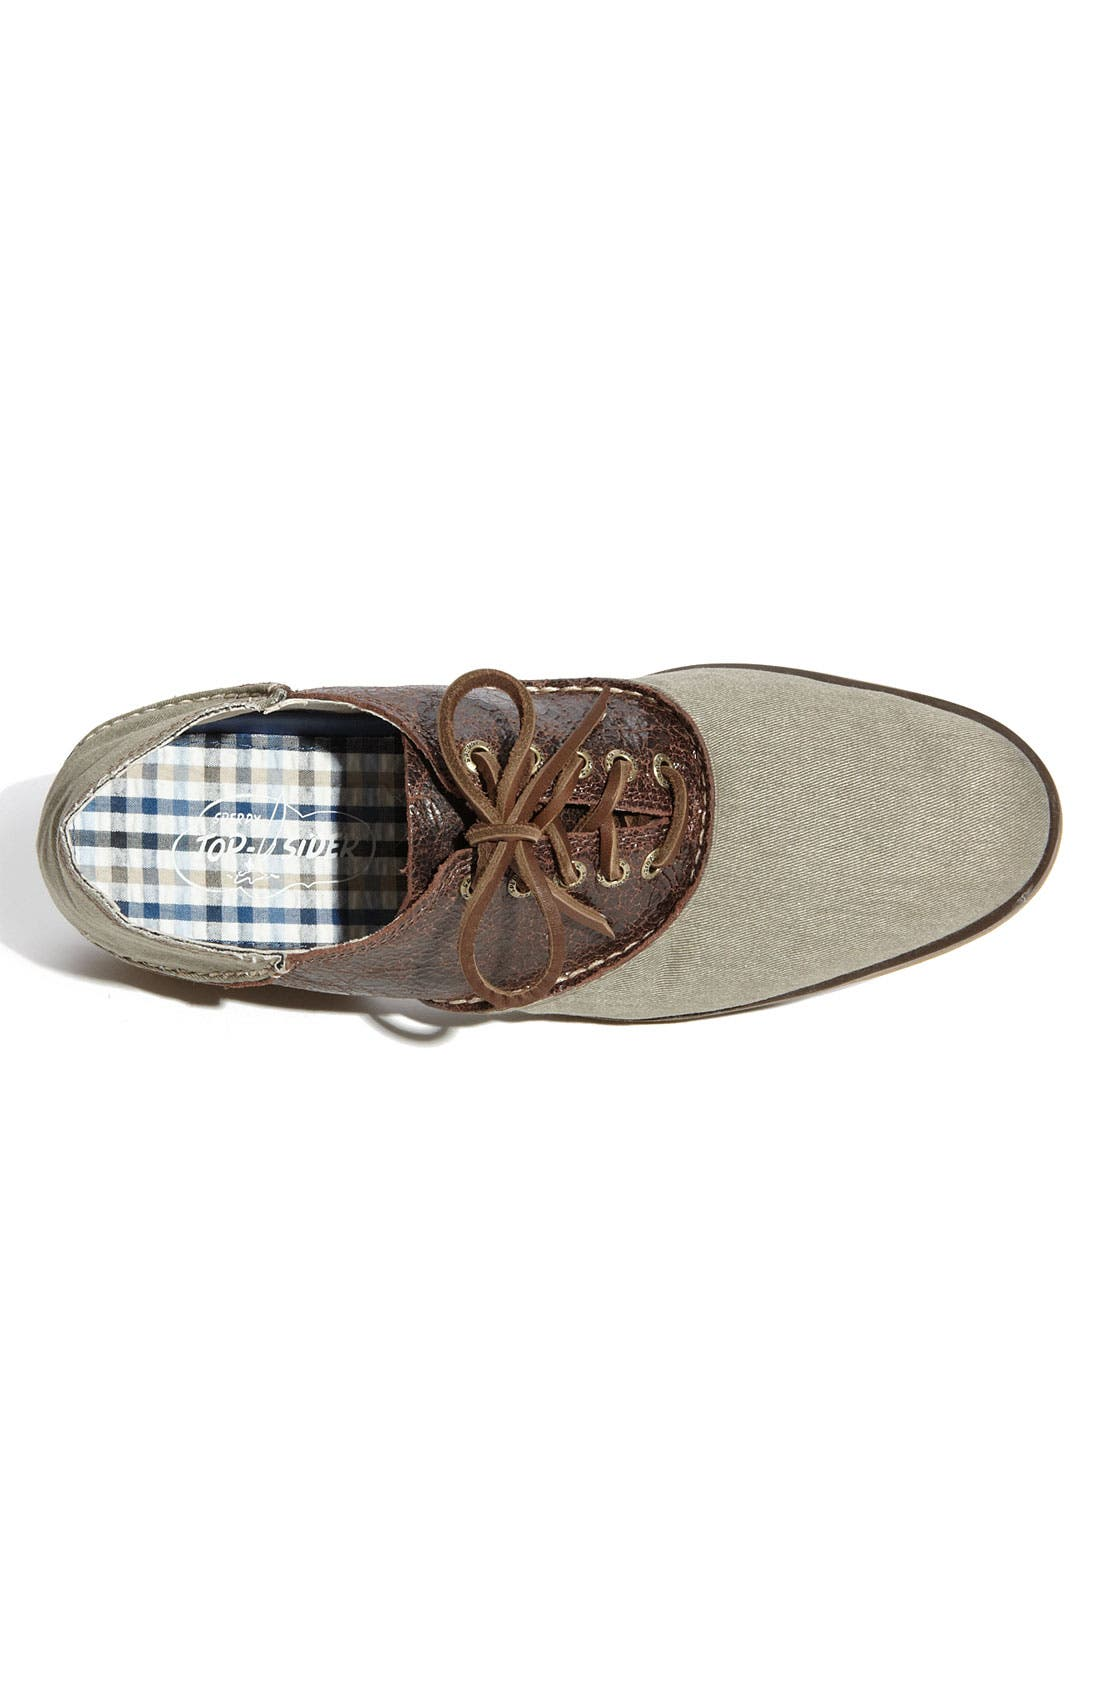 Alternate Image 3  - Sperry Top-Sider® 'Boat' Oxford Saddle Shoe